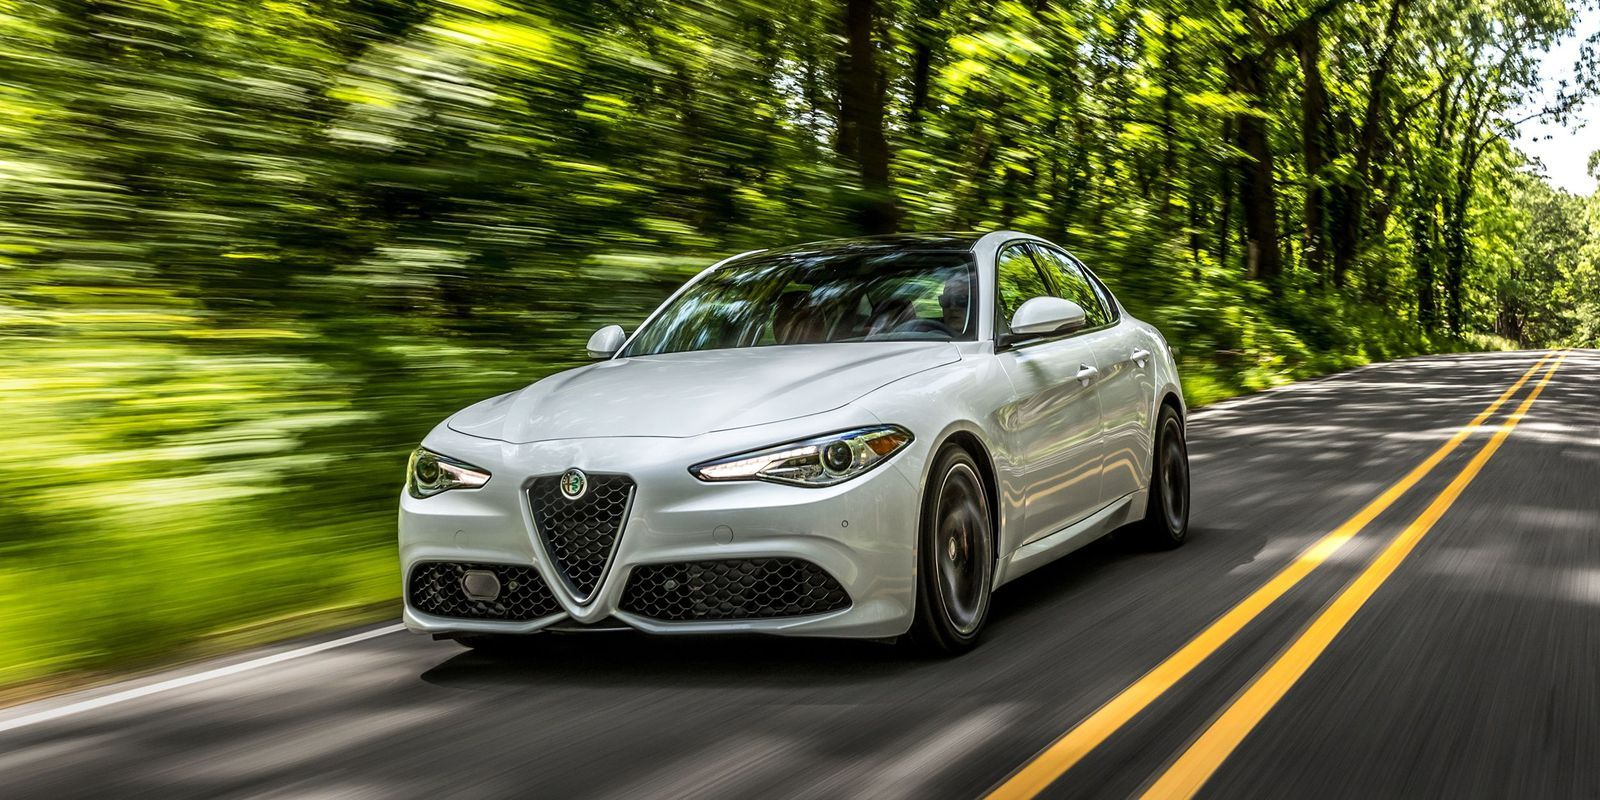 14 Of The Most Powerful 4 Cylinder Cars You Can Buy Right Now Alfa Romeo Giulia Alfa Romeo Sports Cars Luxury